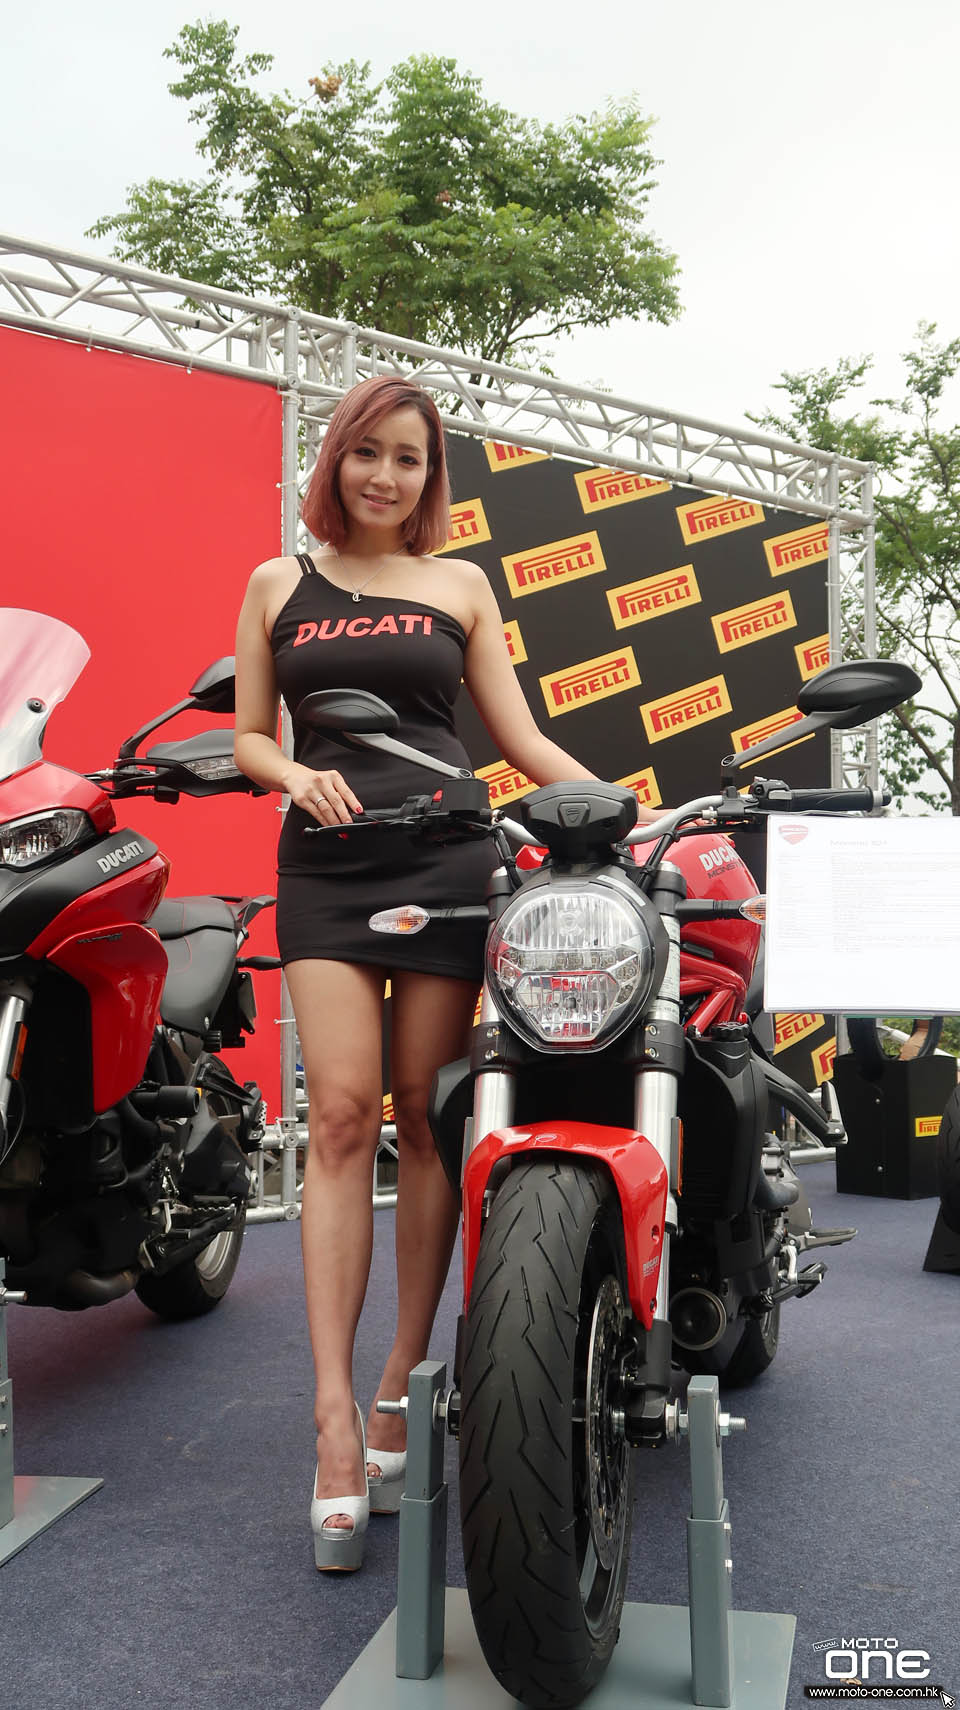 2018 Ducatii HK BIKE SHOW